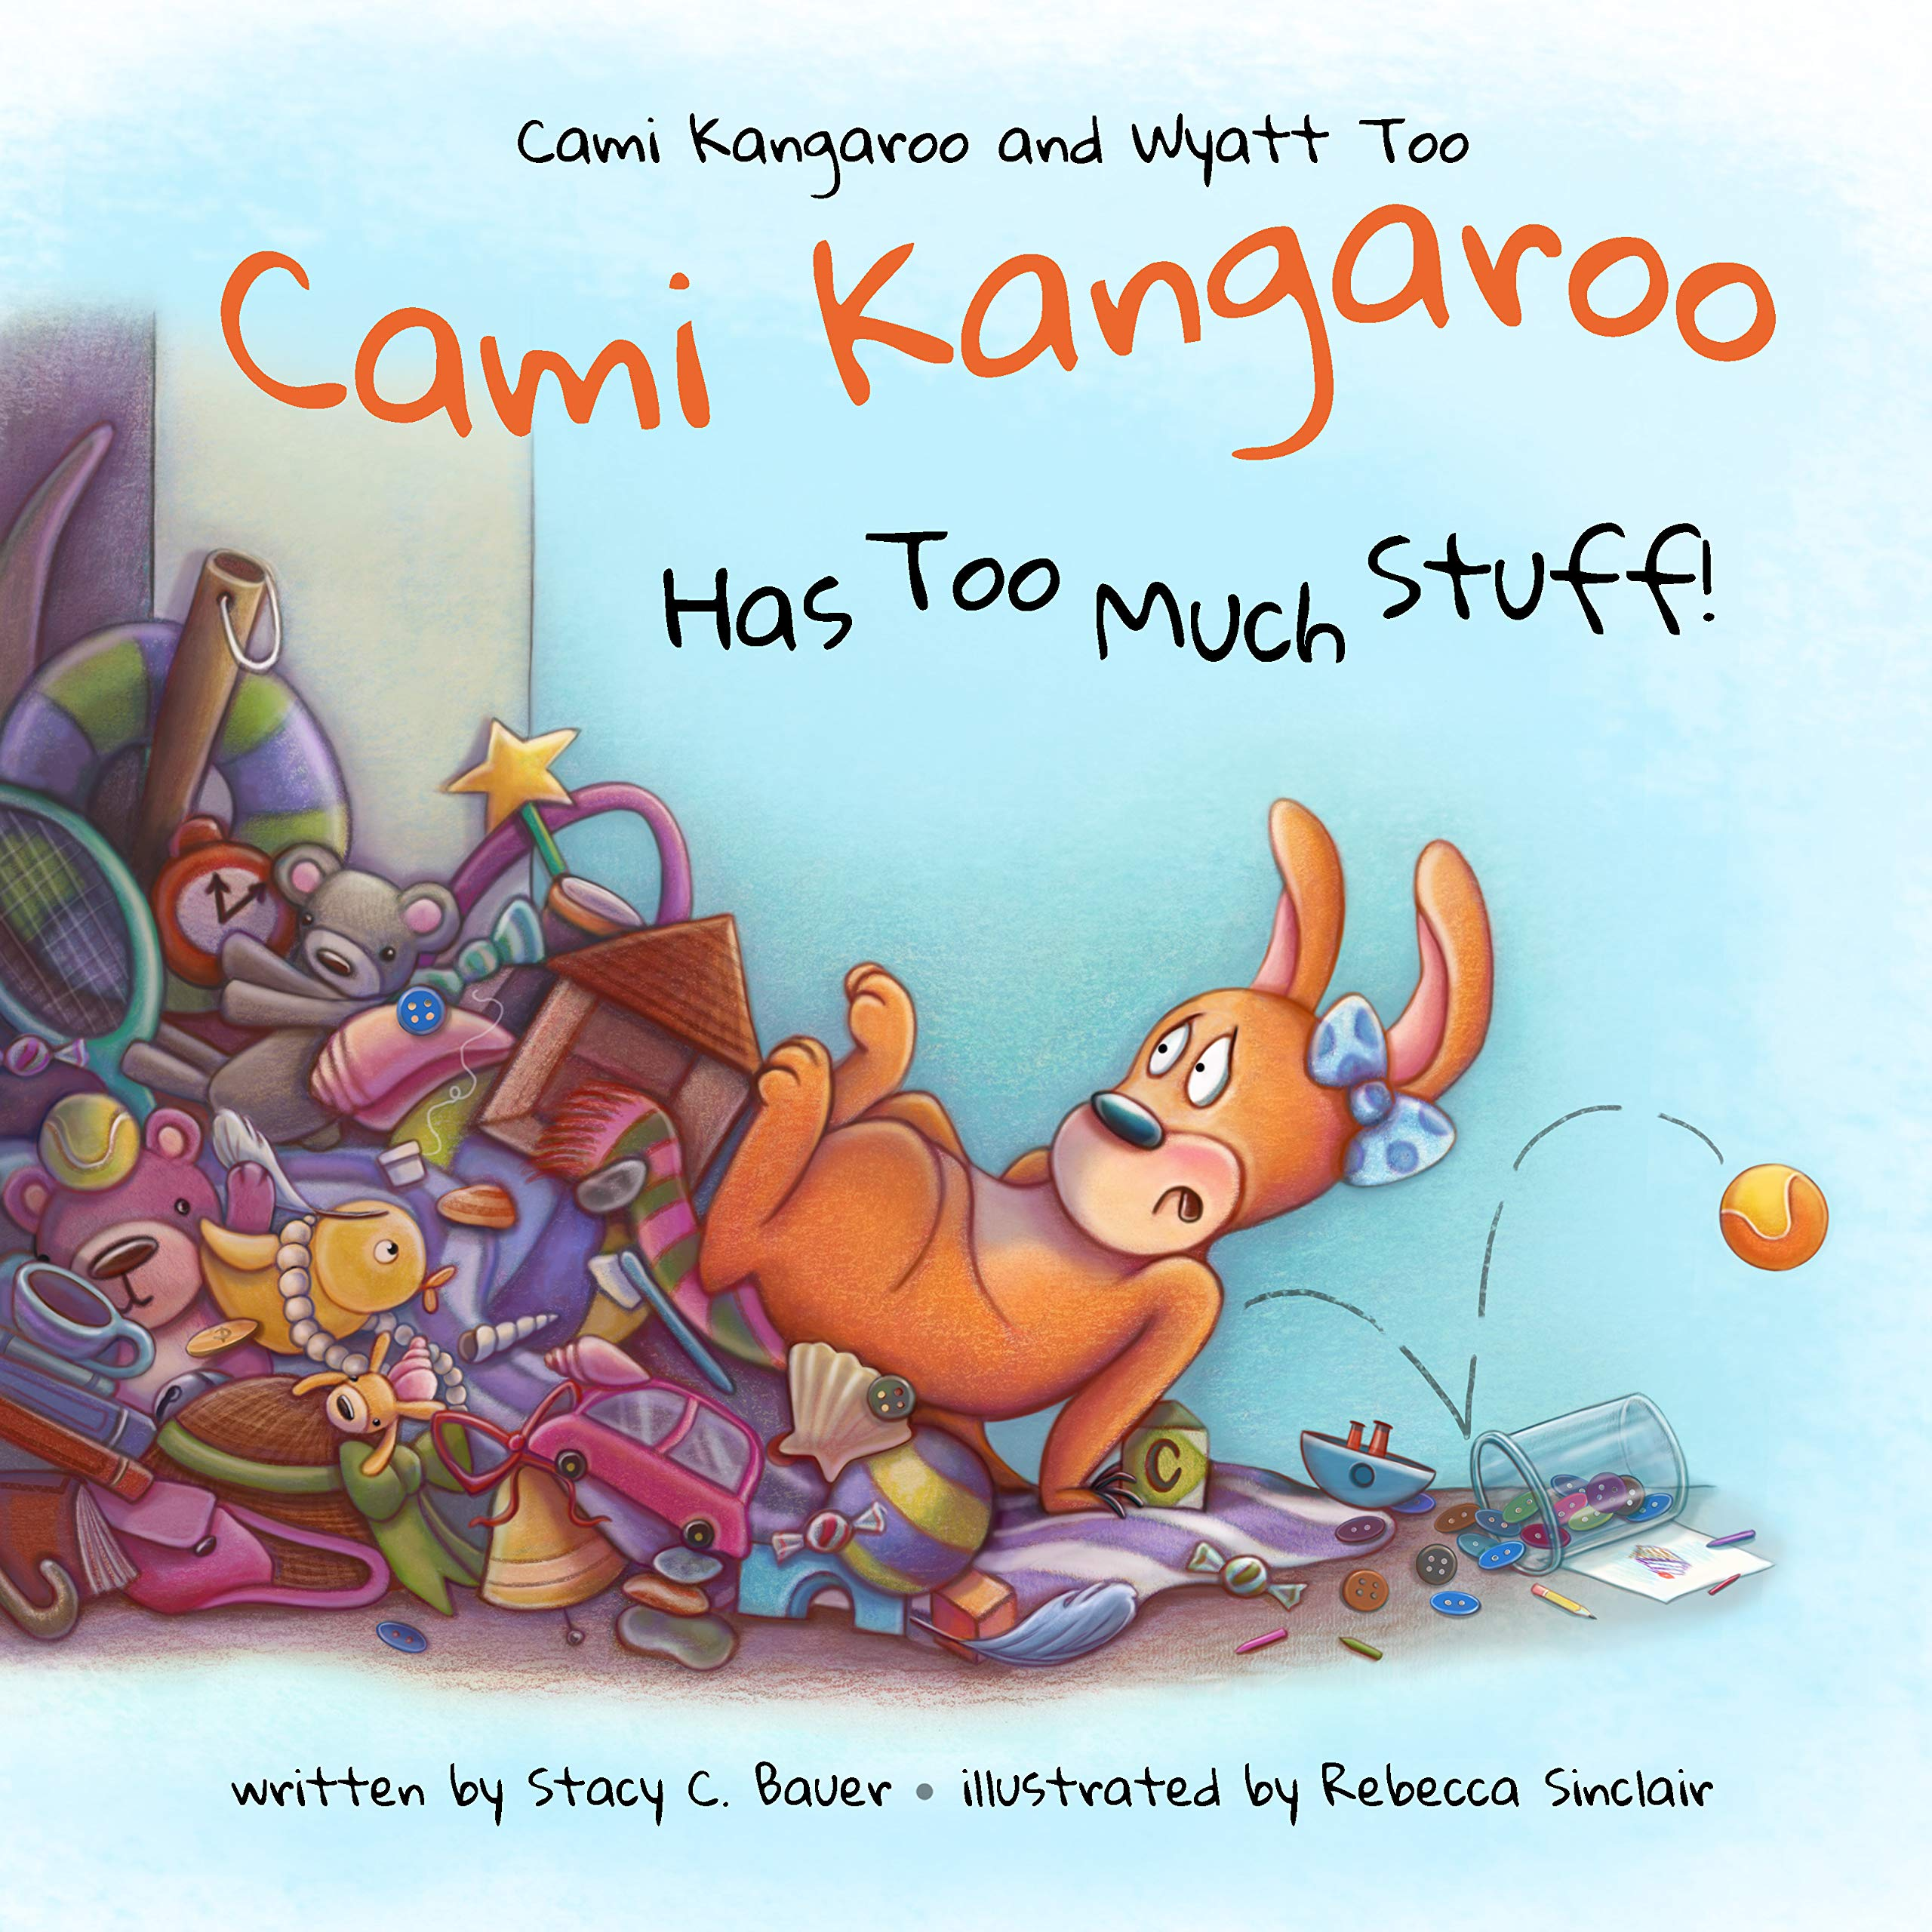 Cami Kangaroo Has Too Much Stuff by Stacy Bauer